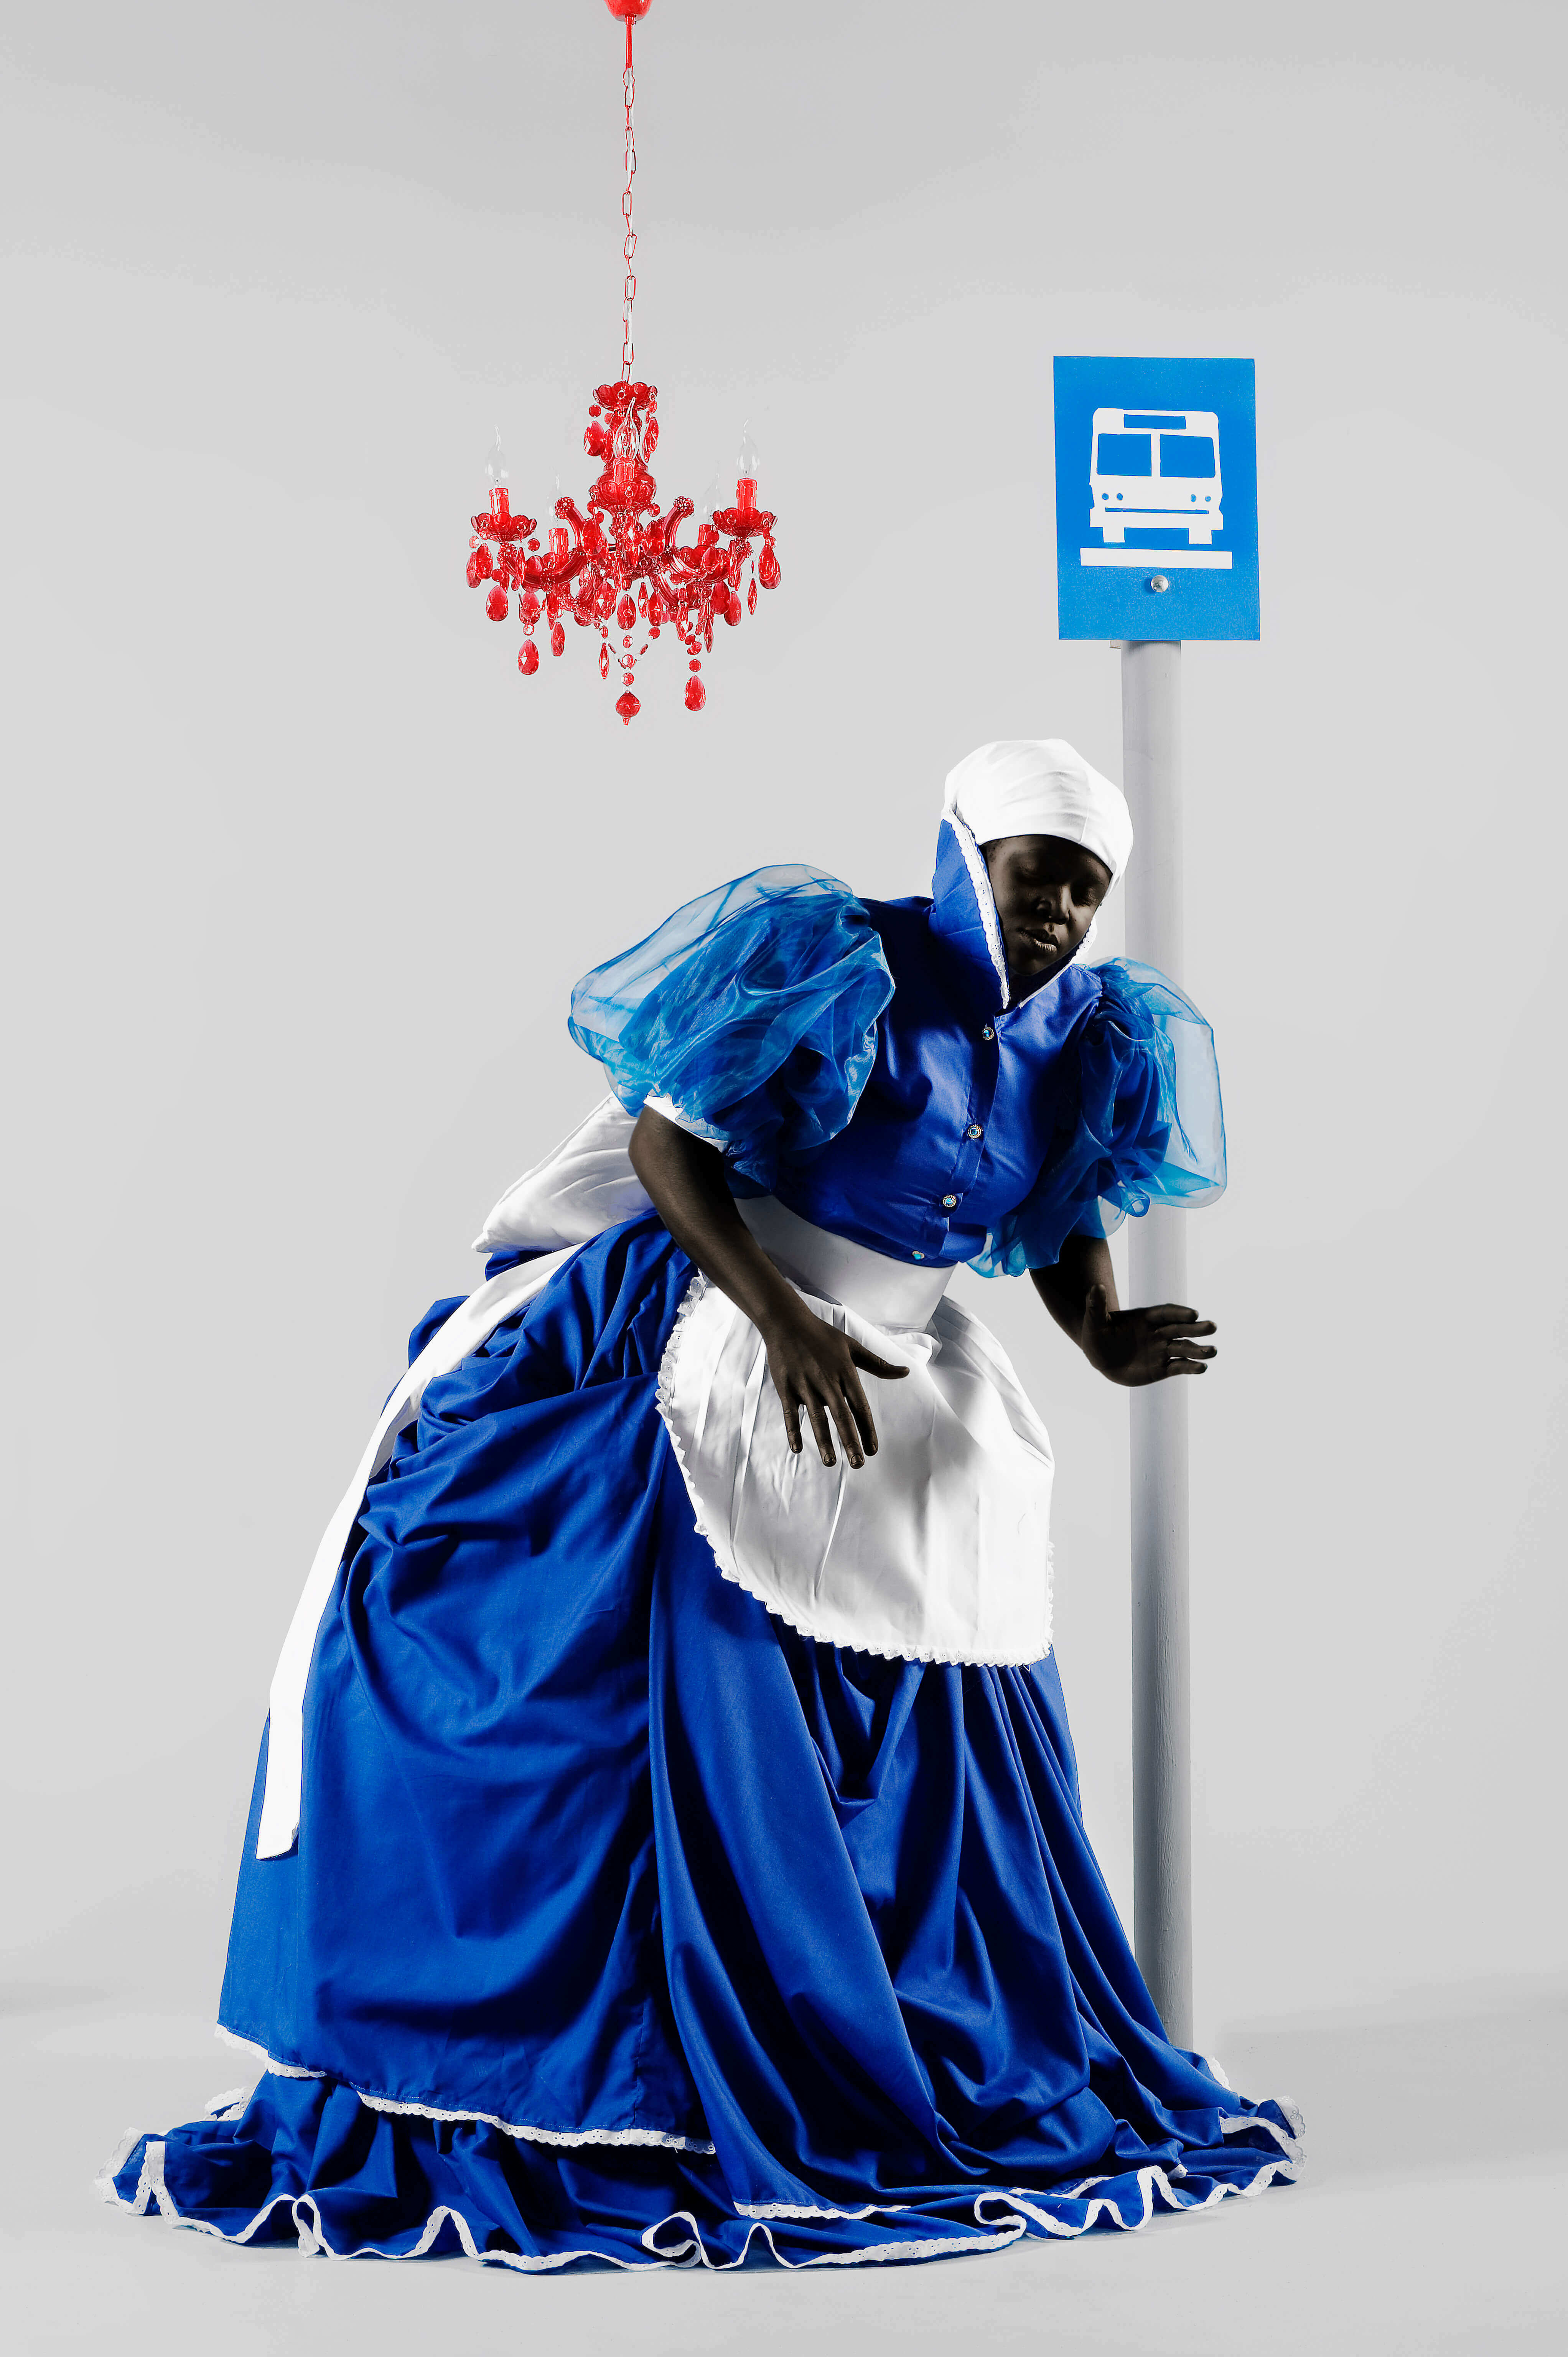 Mary Sibande, The Wait Seems to Go on Forever, 2009. Archival digital print, 90 x 60cm. All images courtesy of SMAC & the artist.